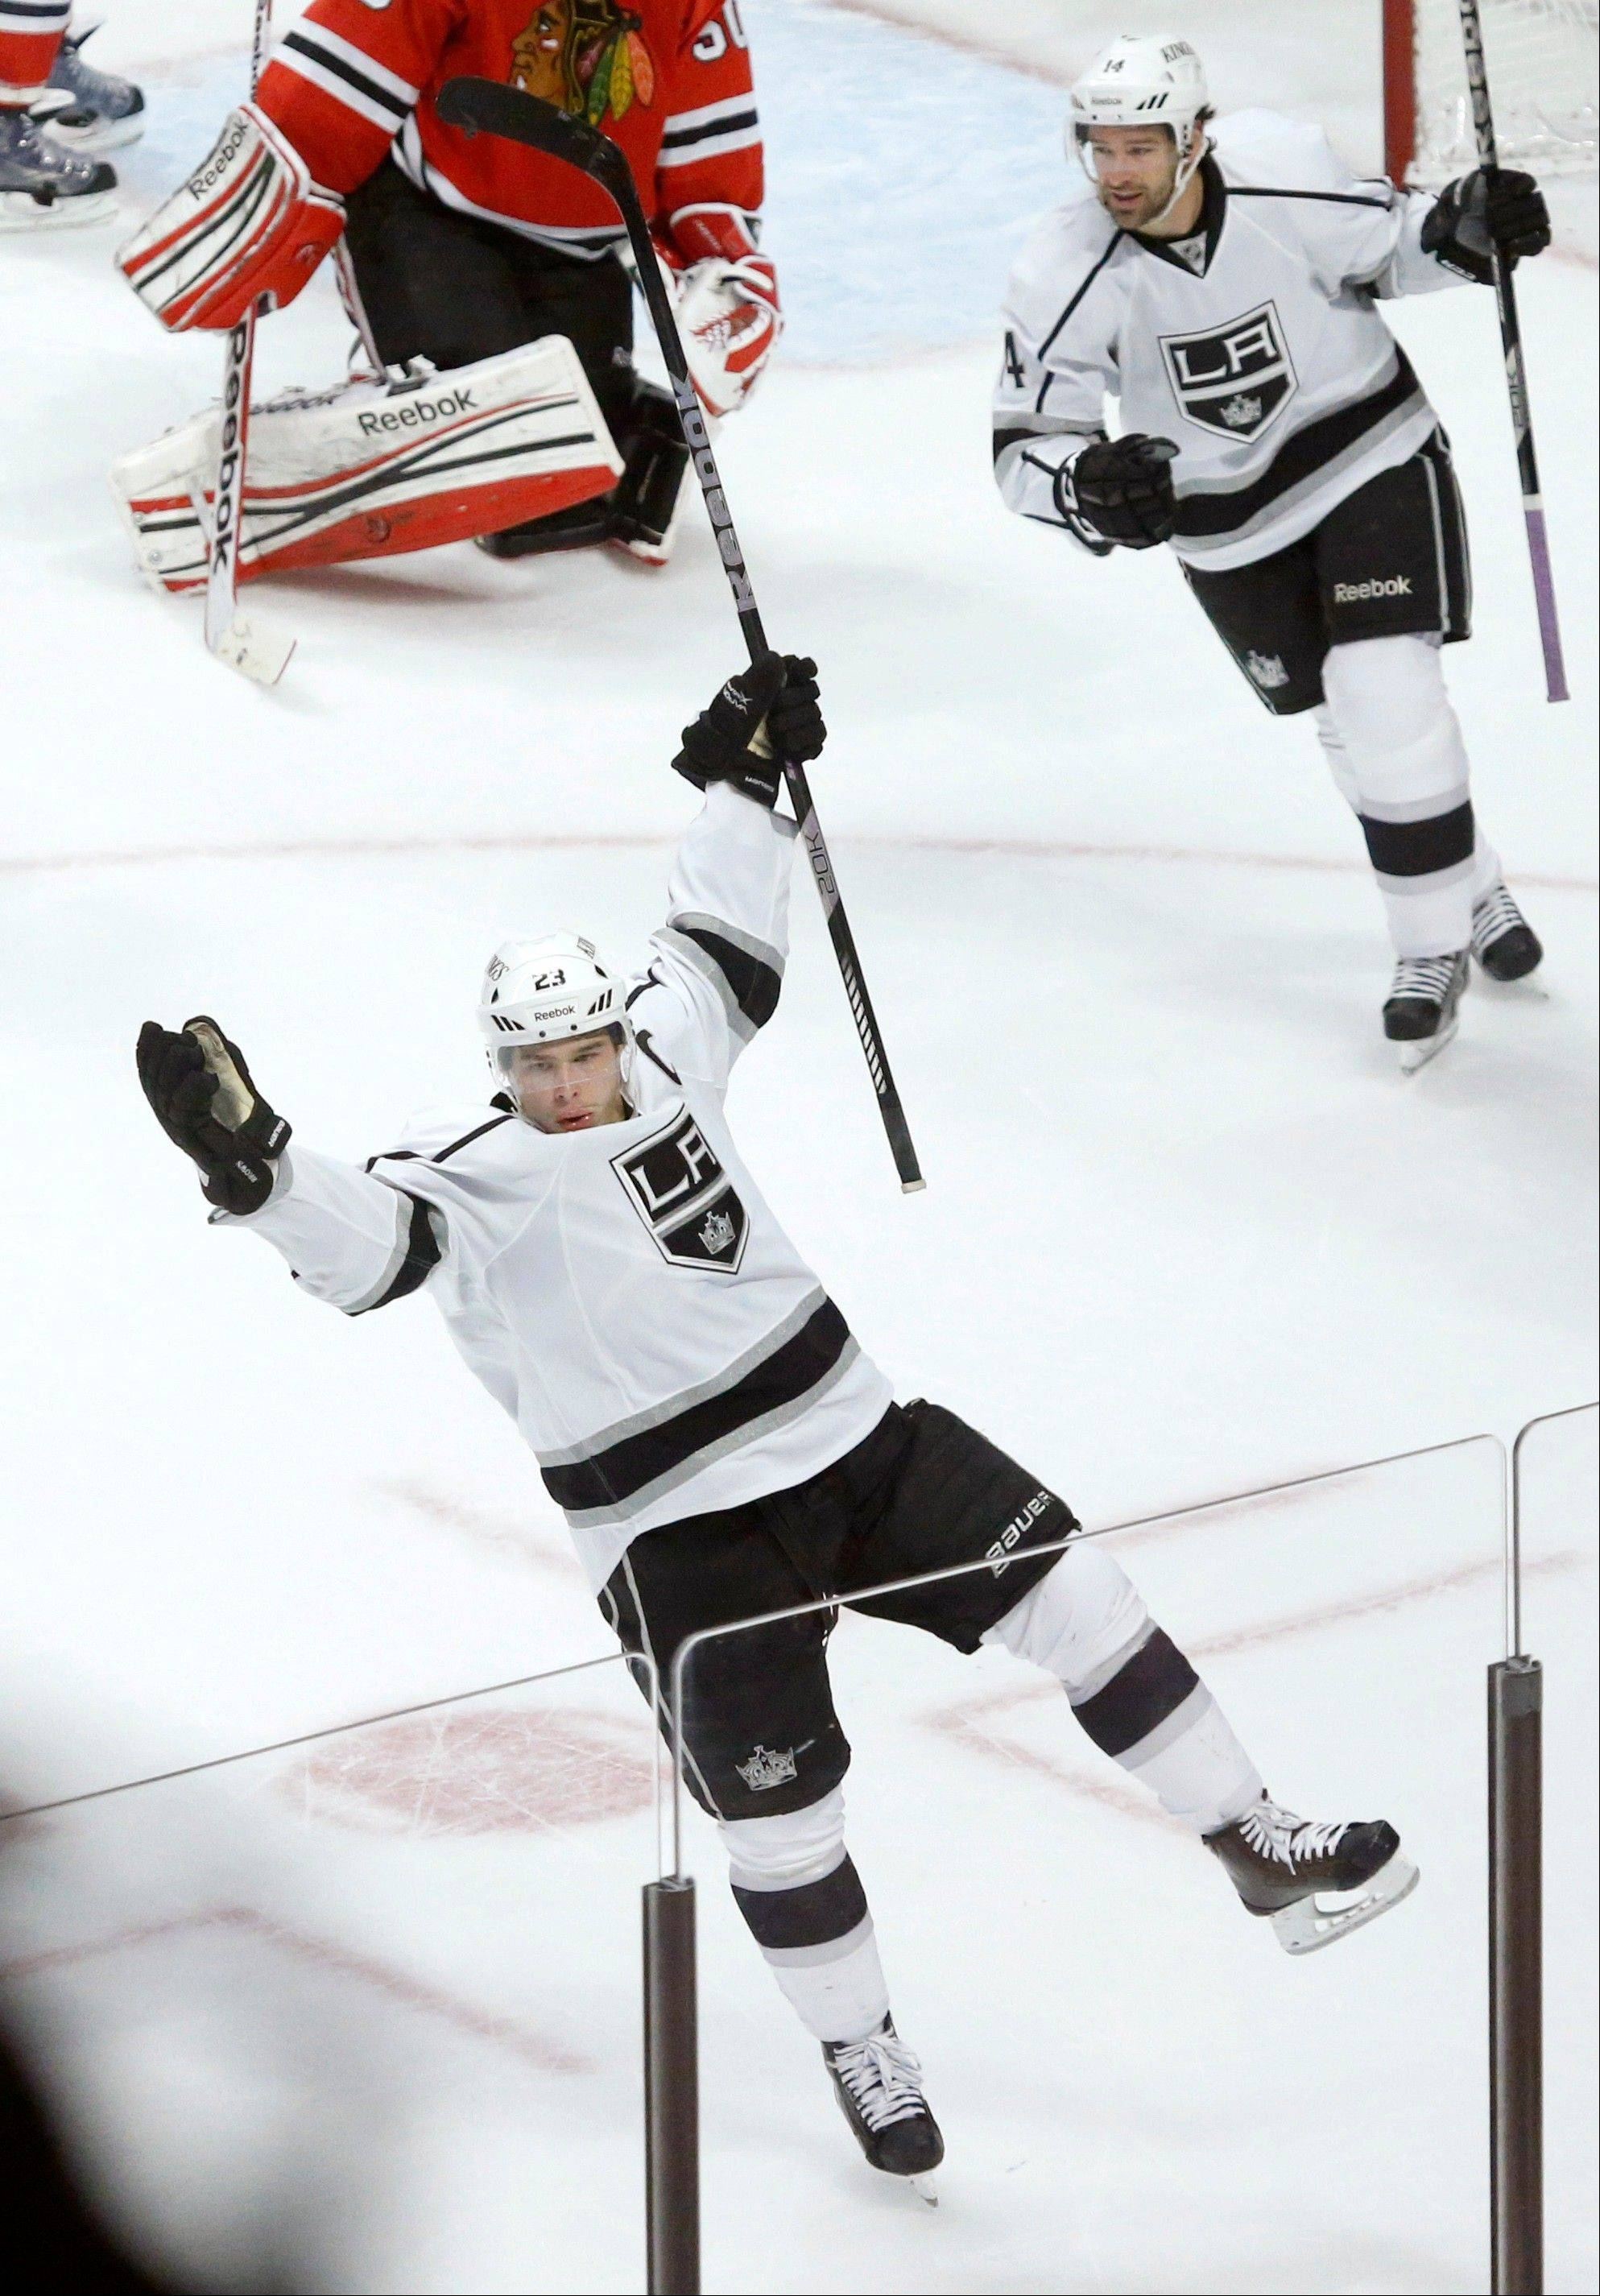 Los Angeles Kings right wing Dustin Brown, bottom, celebrates his winning goal as teammate Justin Williams watches during the third period of an NHL hockey game against the Blackhawks, Monday, March 25, 2013, in Chicago. The Kings won 5-4.